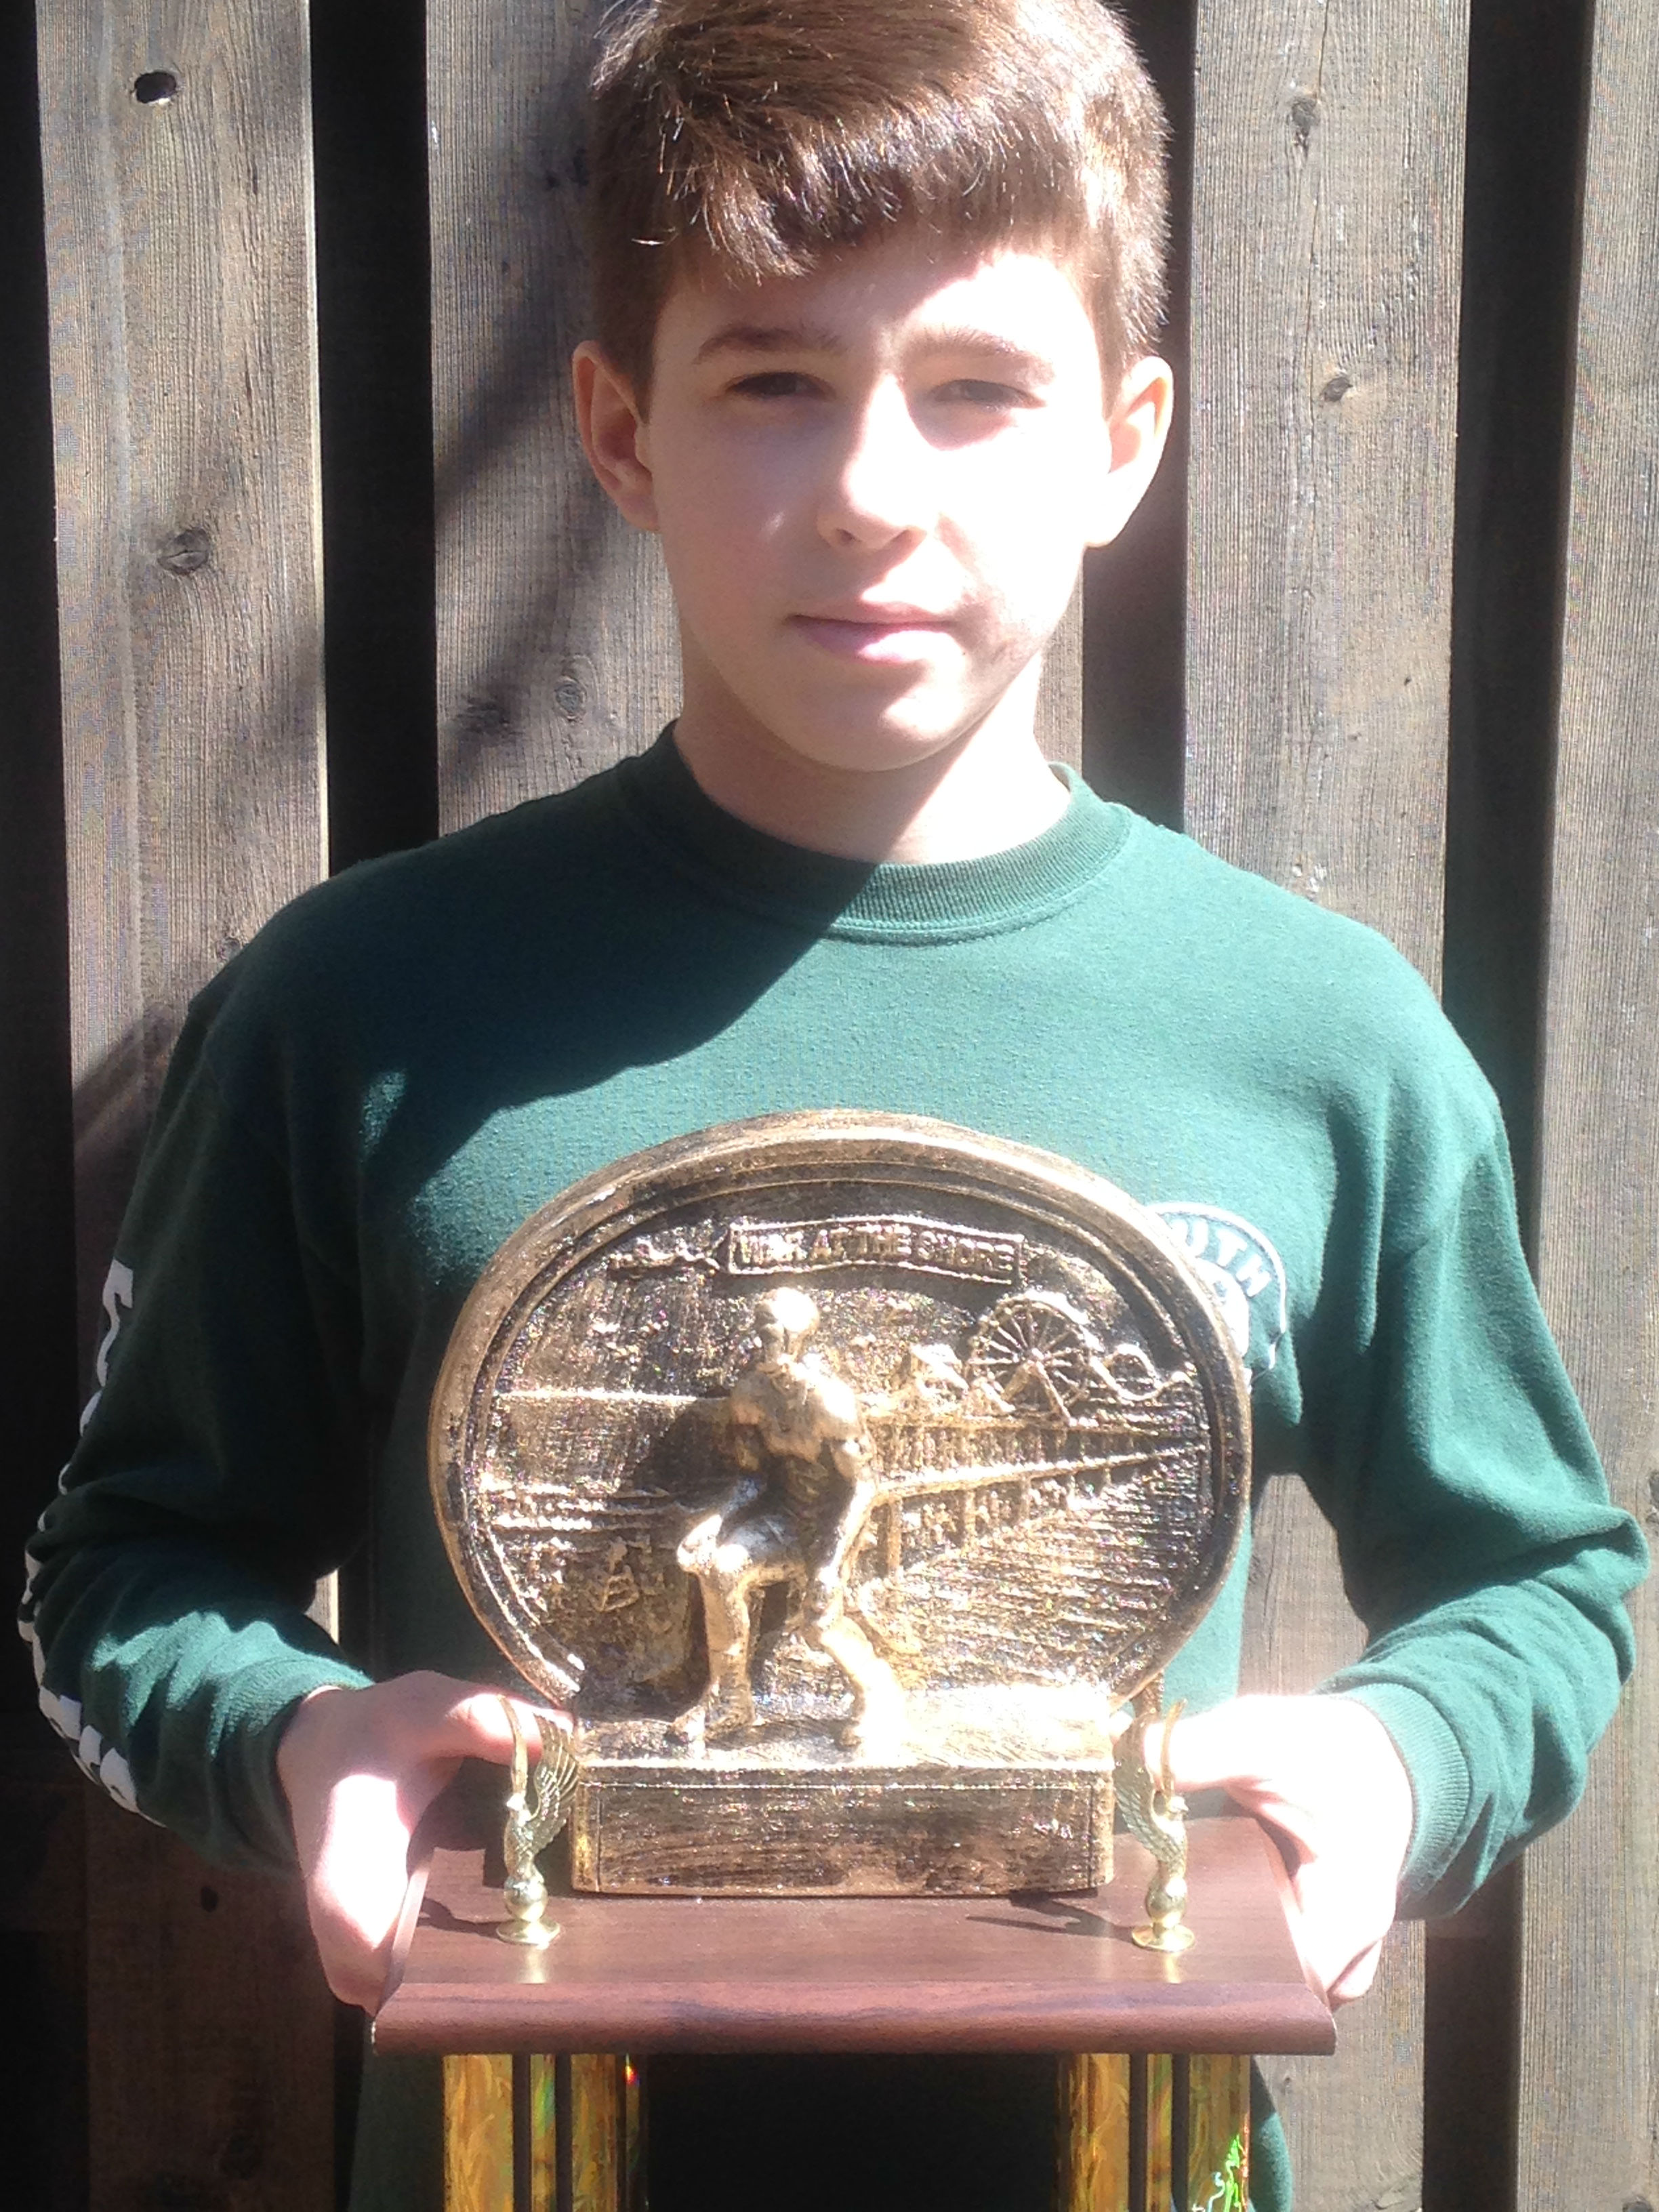 50421f593473964e5676_Anthony_White_Holding_1st_Place_War_at_the_Shore_Trophy_Picture.jpg